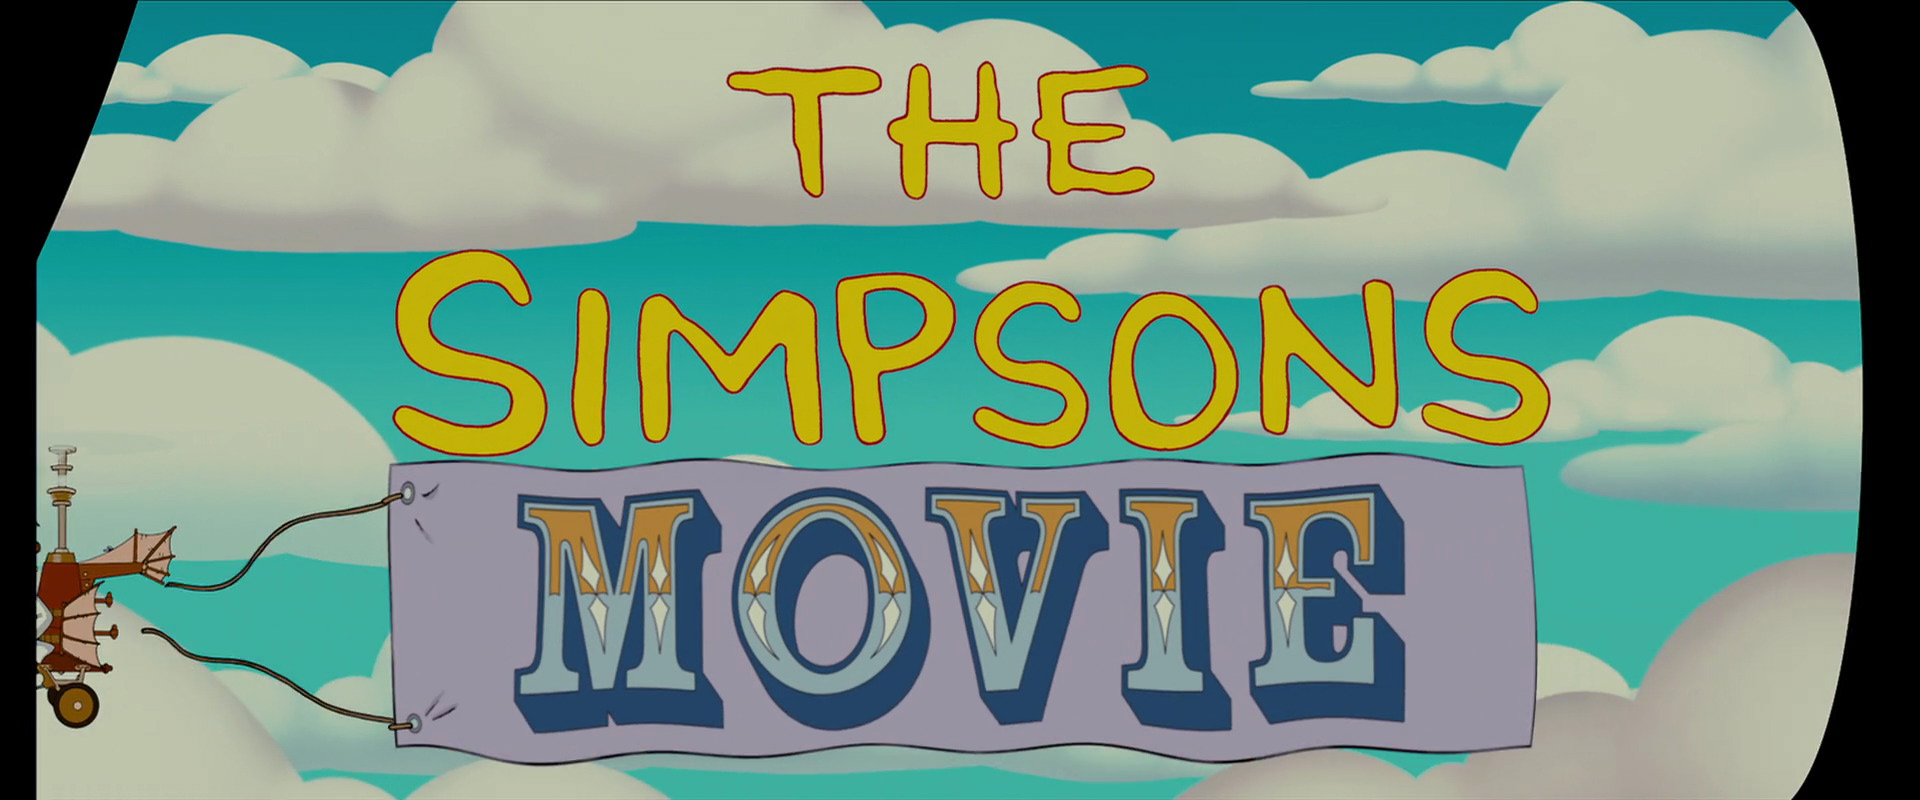 The Simpsons Movie Simpsons Wiki Fandom Powered By Wikia Induced Info